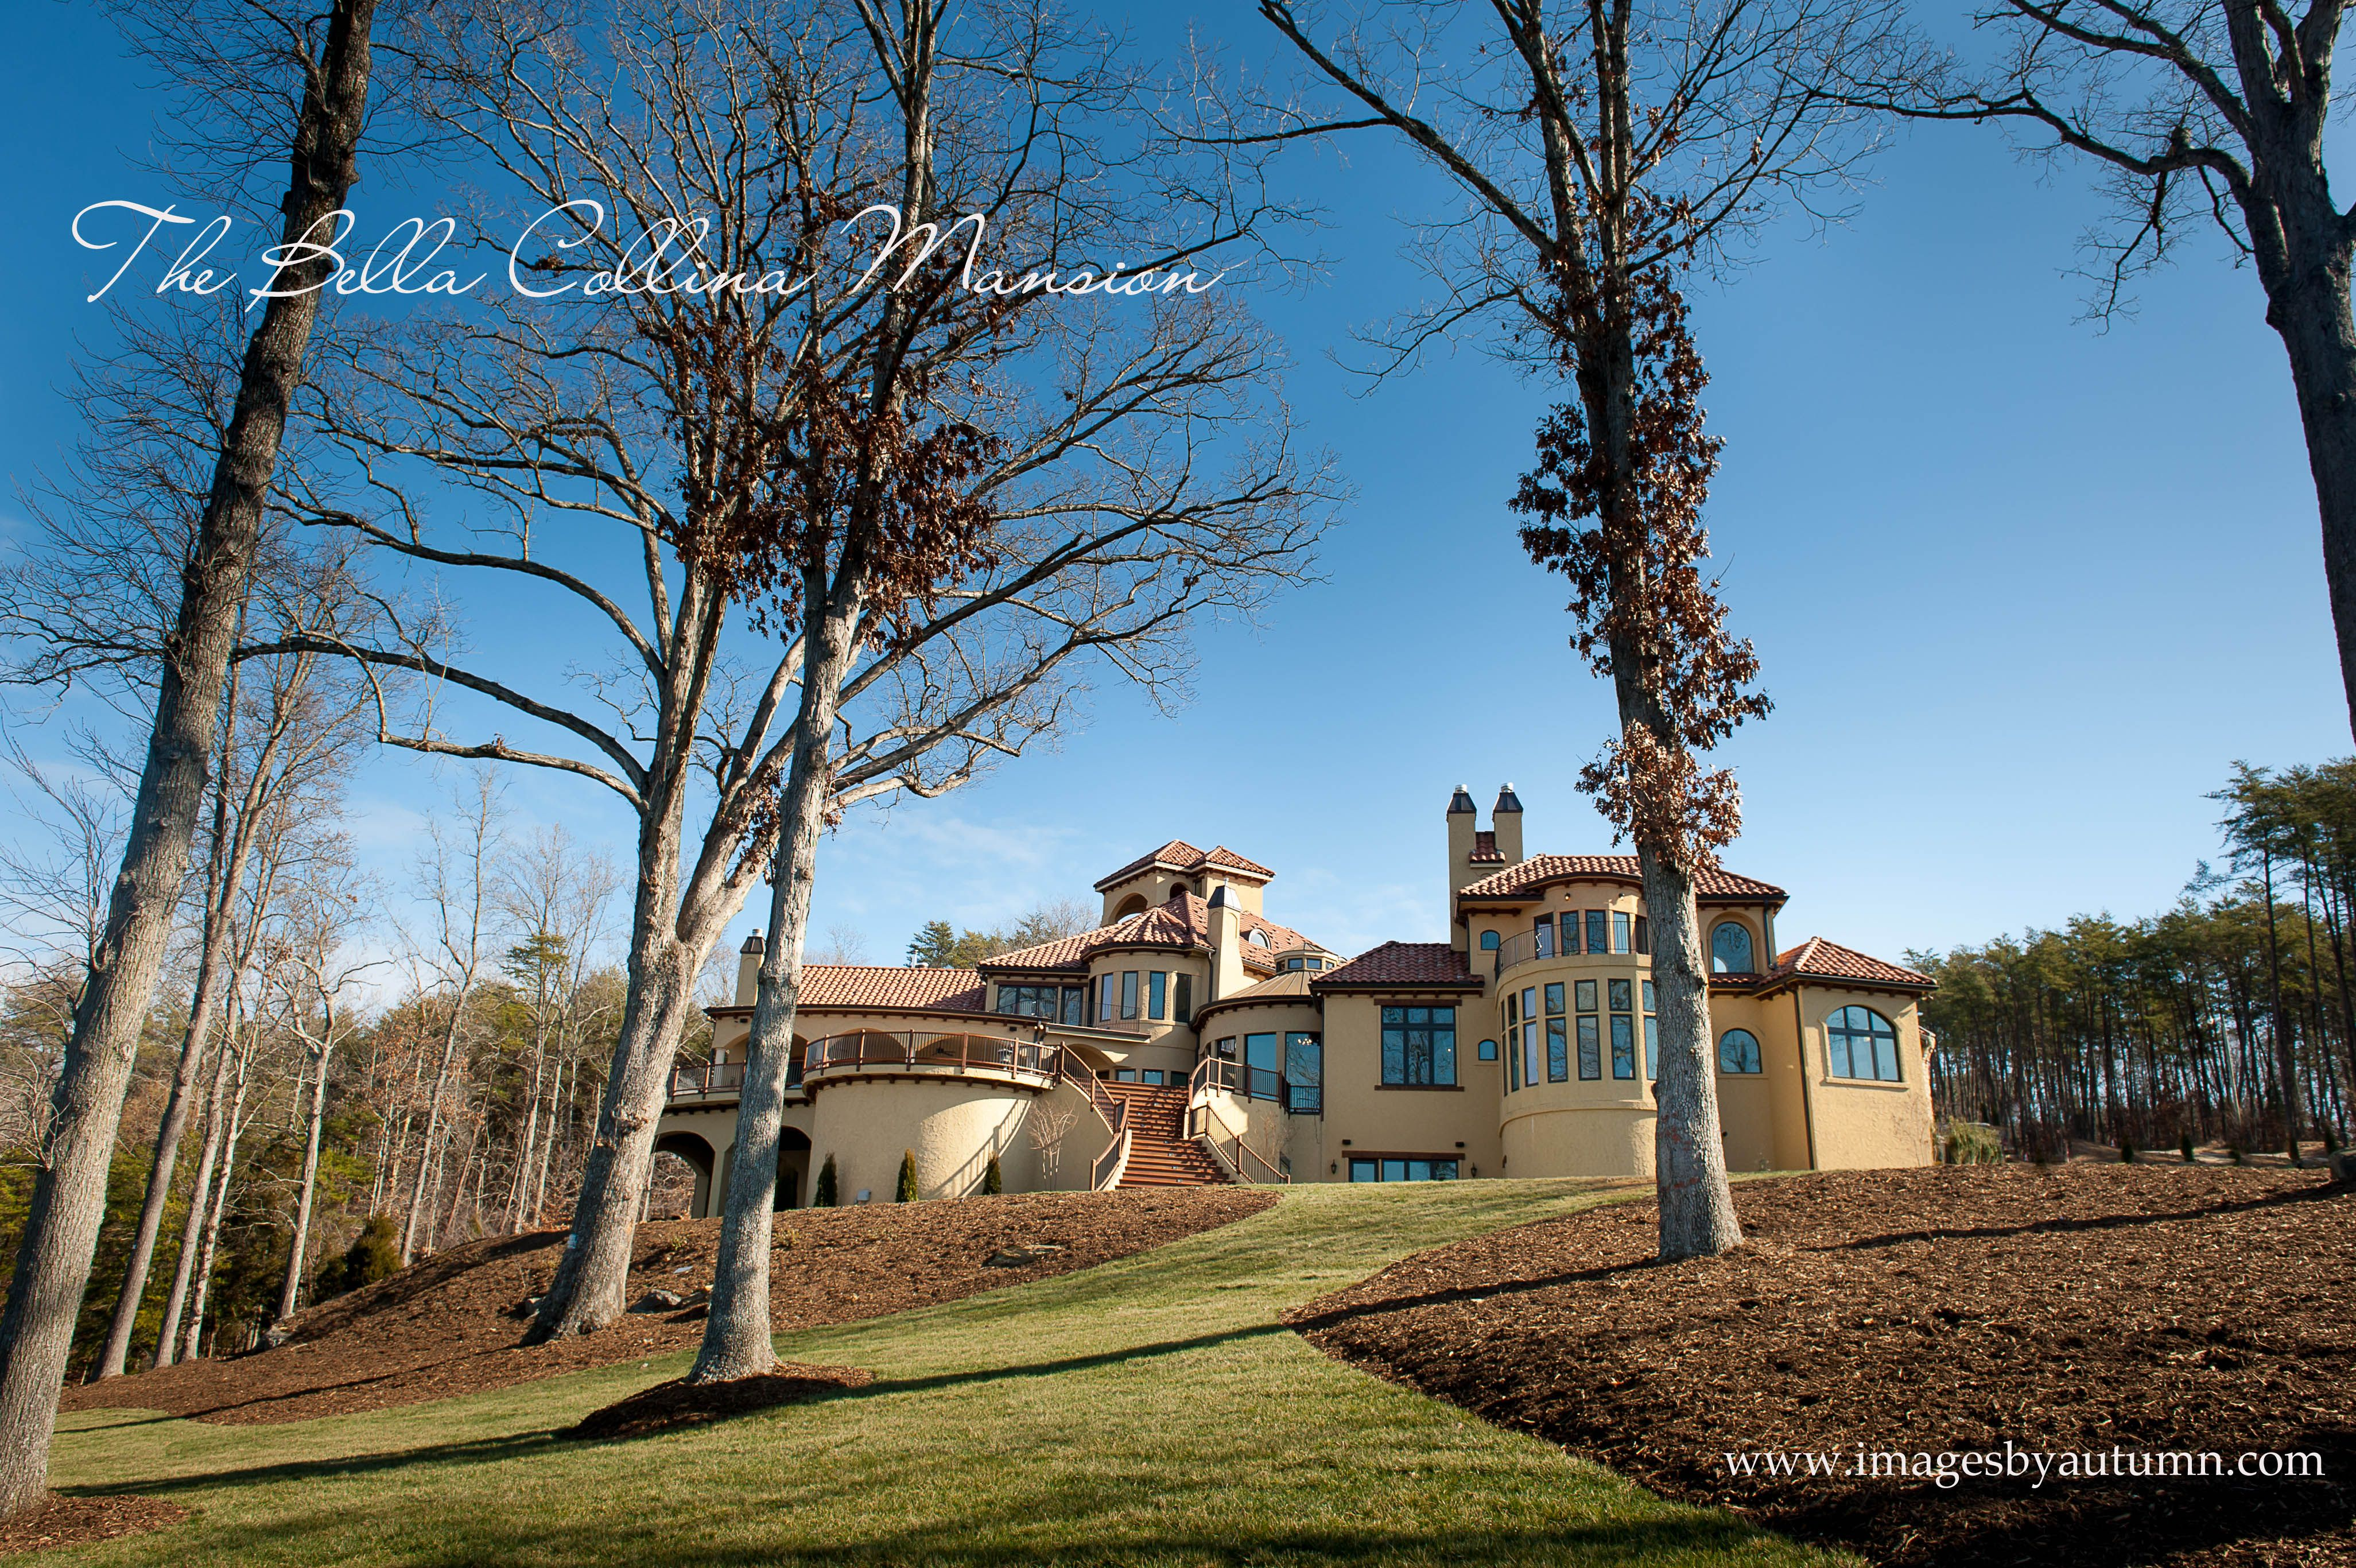 The Bella Collina Mansion Stokesdale, NC www ...   4105 x 2732 jpeg 2077kB